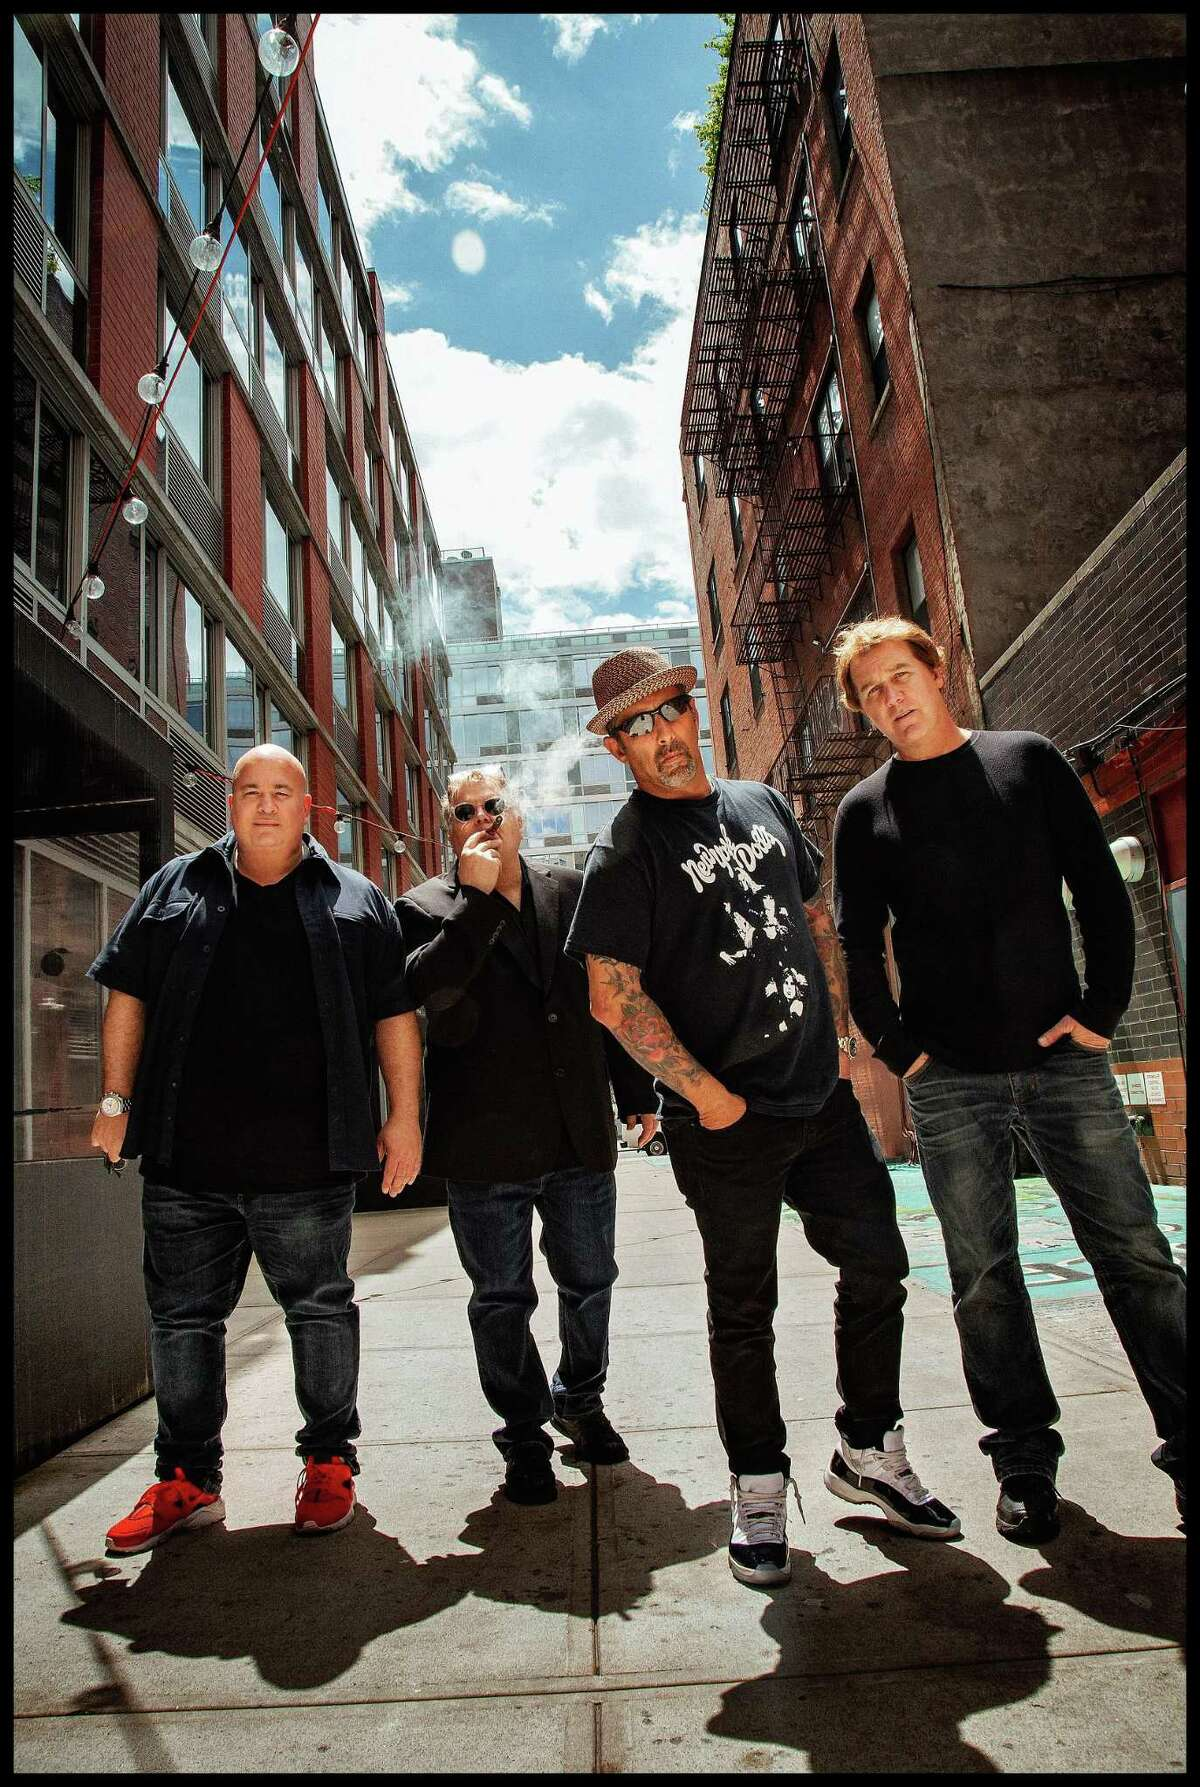 Kreeps with Kids, featuring Robert Kelly, Ron Bennington, Rich Voss and Jim Florentine, will perform on Feb. 7 and 8 at 8 p.m. at the Ridgefield Playhouse, 80 East Ridge Road, Ridgefield. Tickets are $49.50. For more information, visit ridgefieldplayhouse.org.